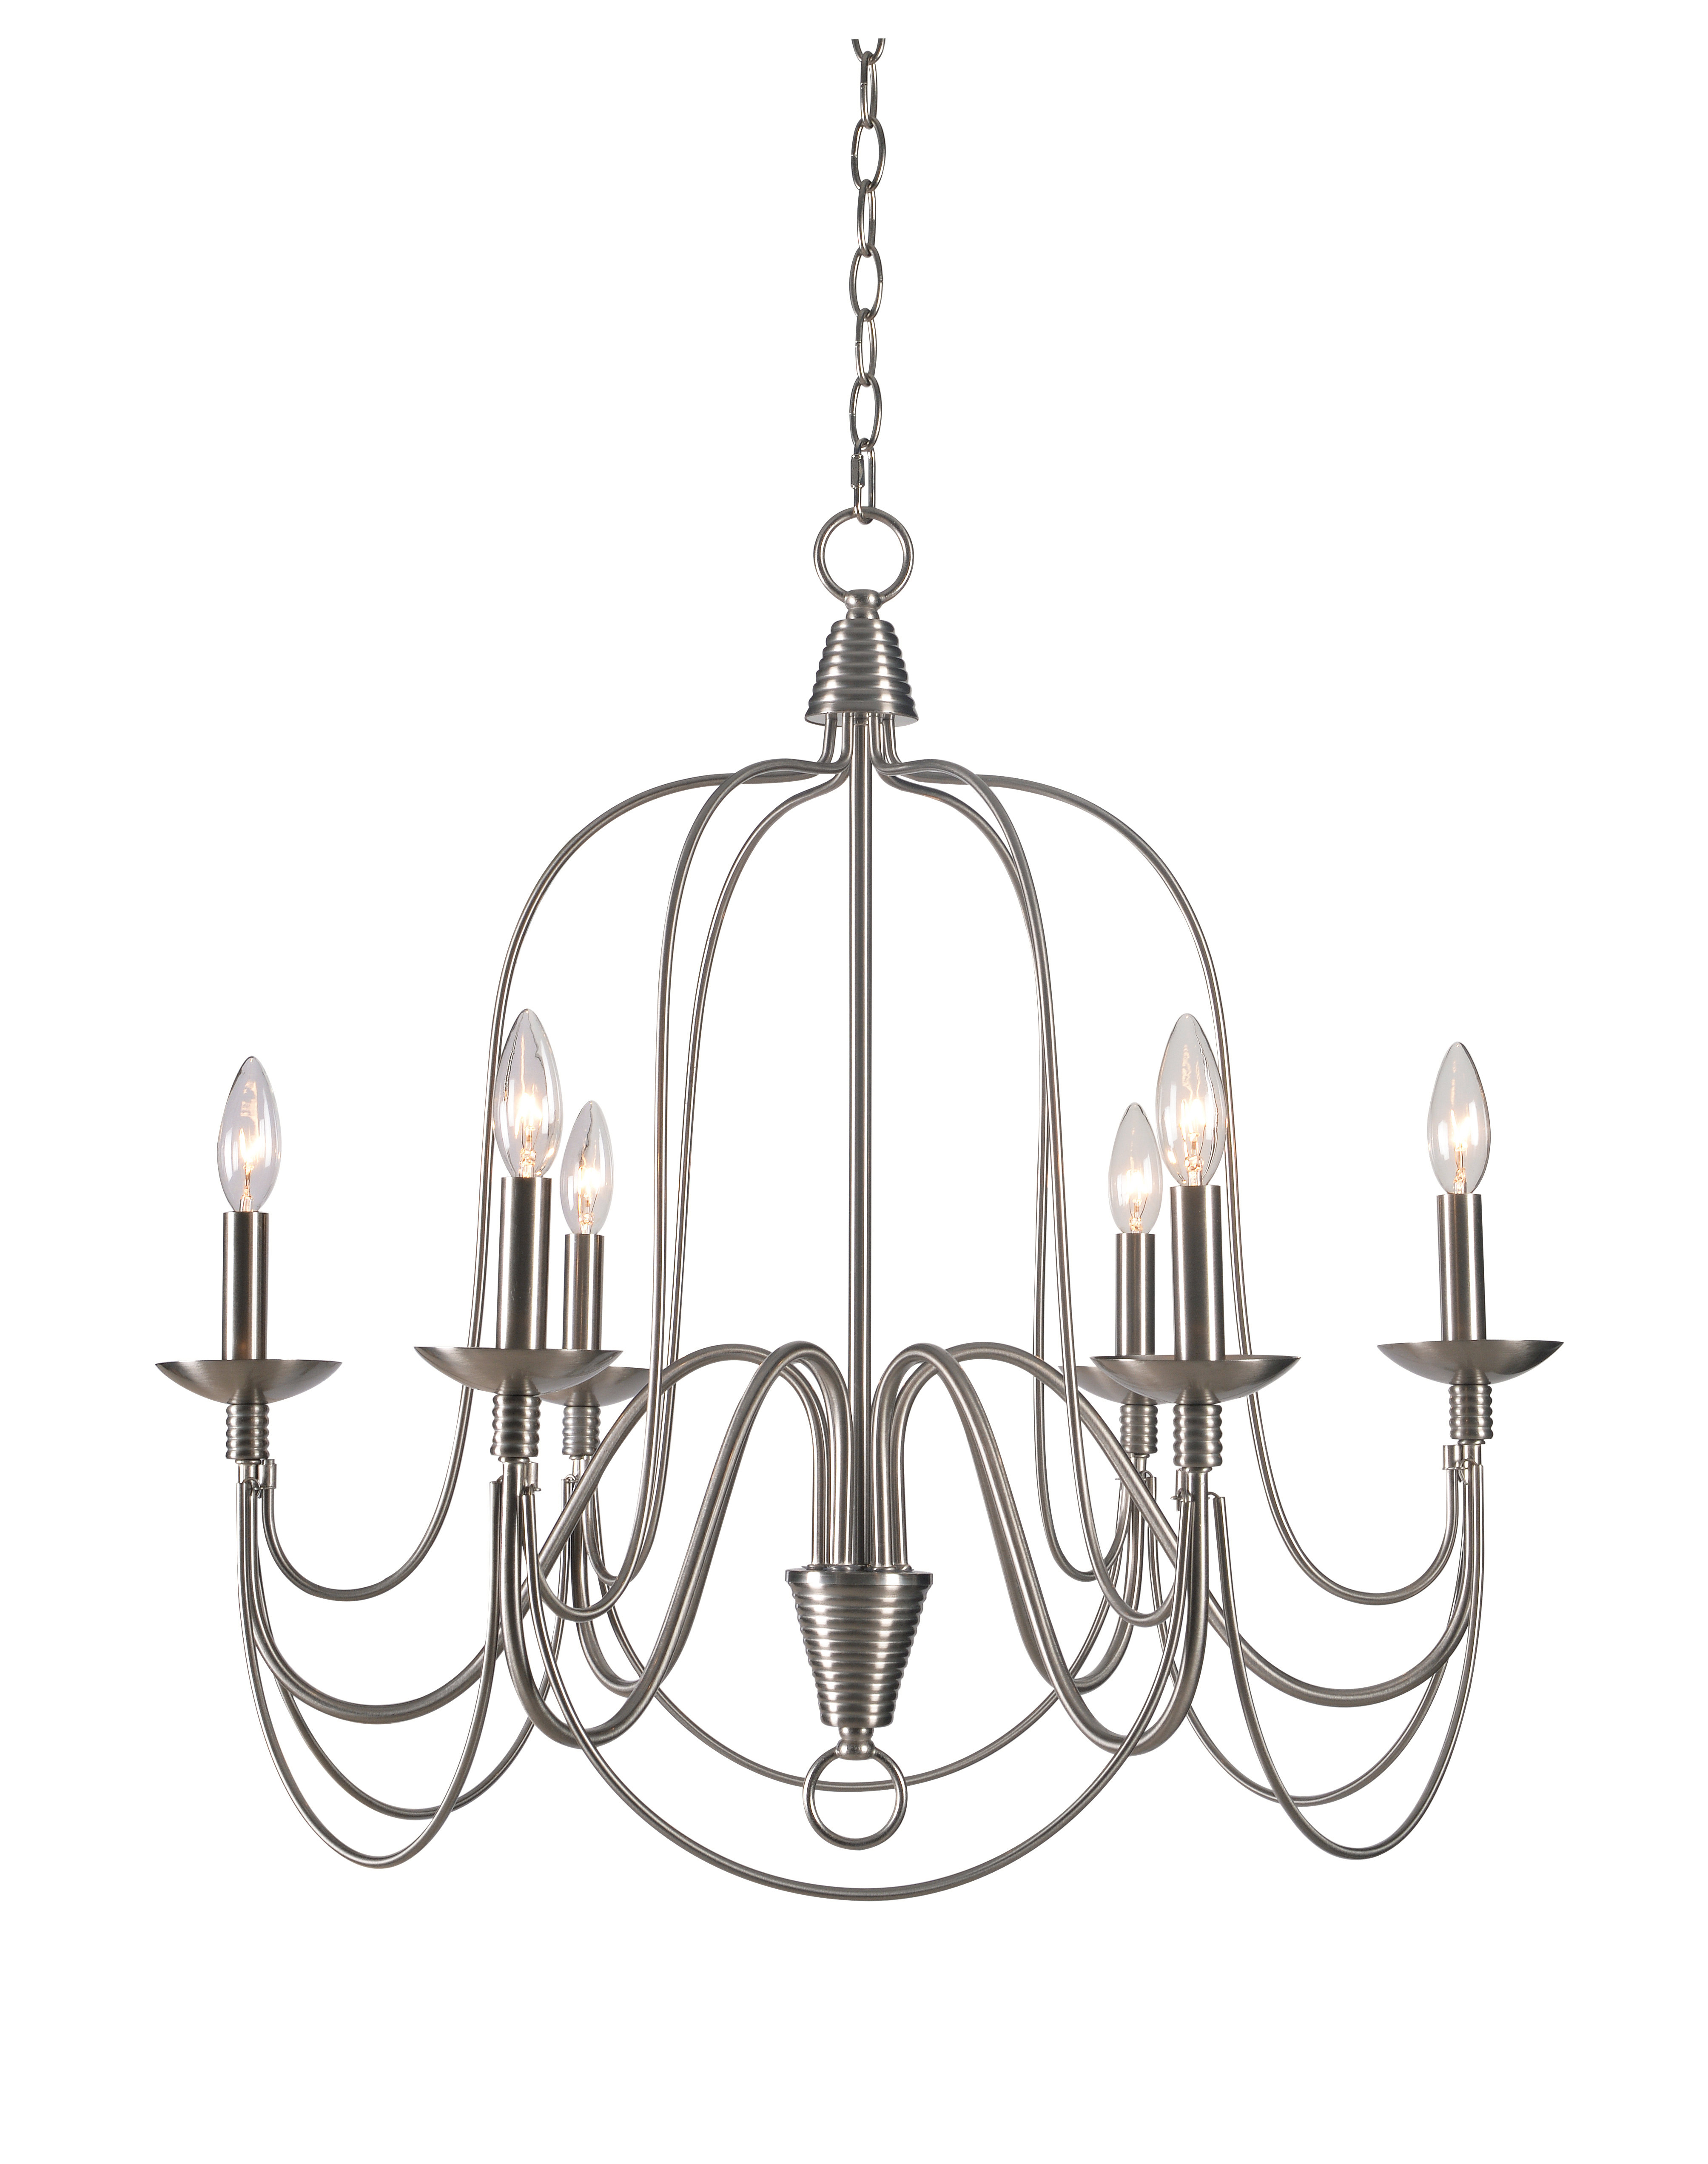 Gaines 9 Light Candle Style Chandeliers Intended For Most Recent Kollman 6 Light Candle Style Chandelier (View 10 of 25)